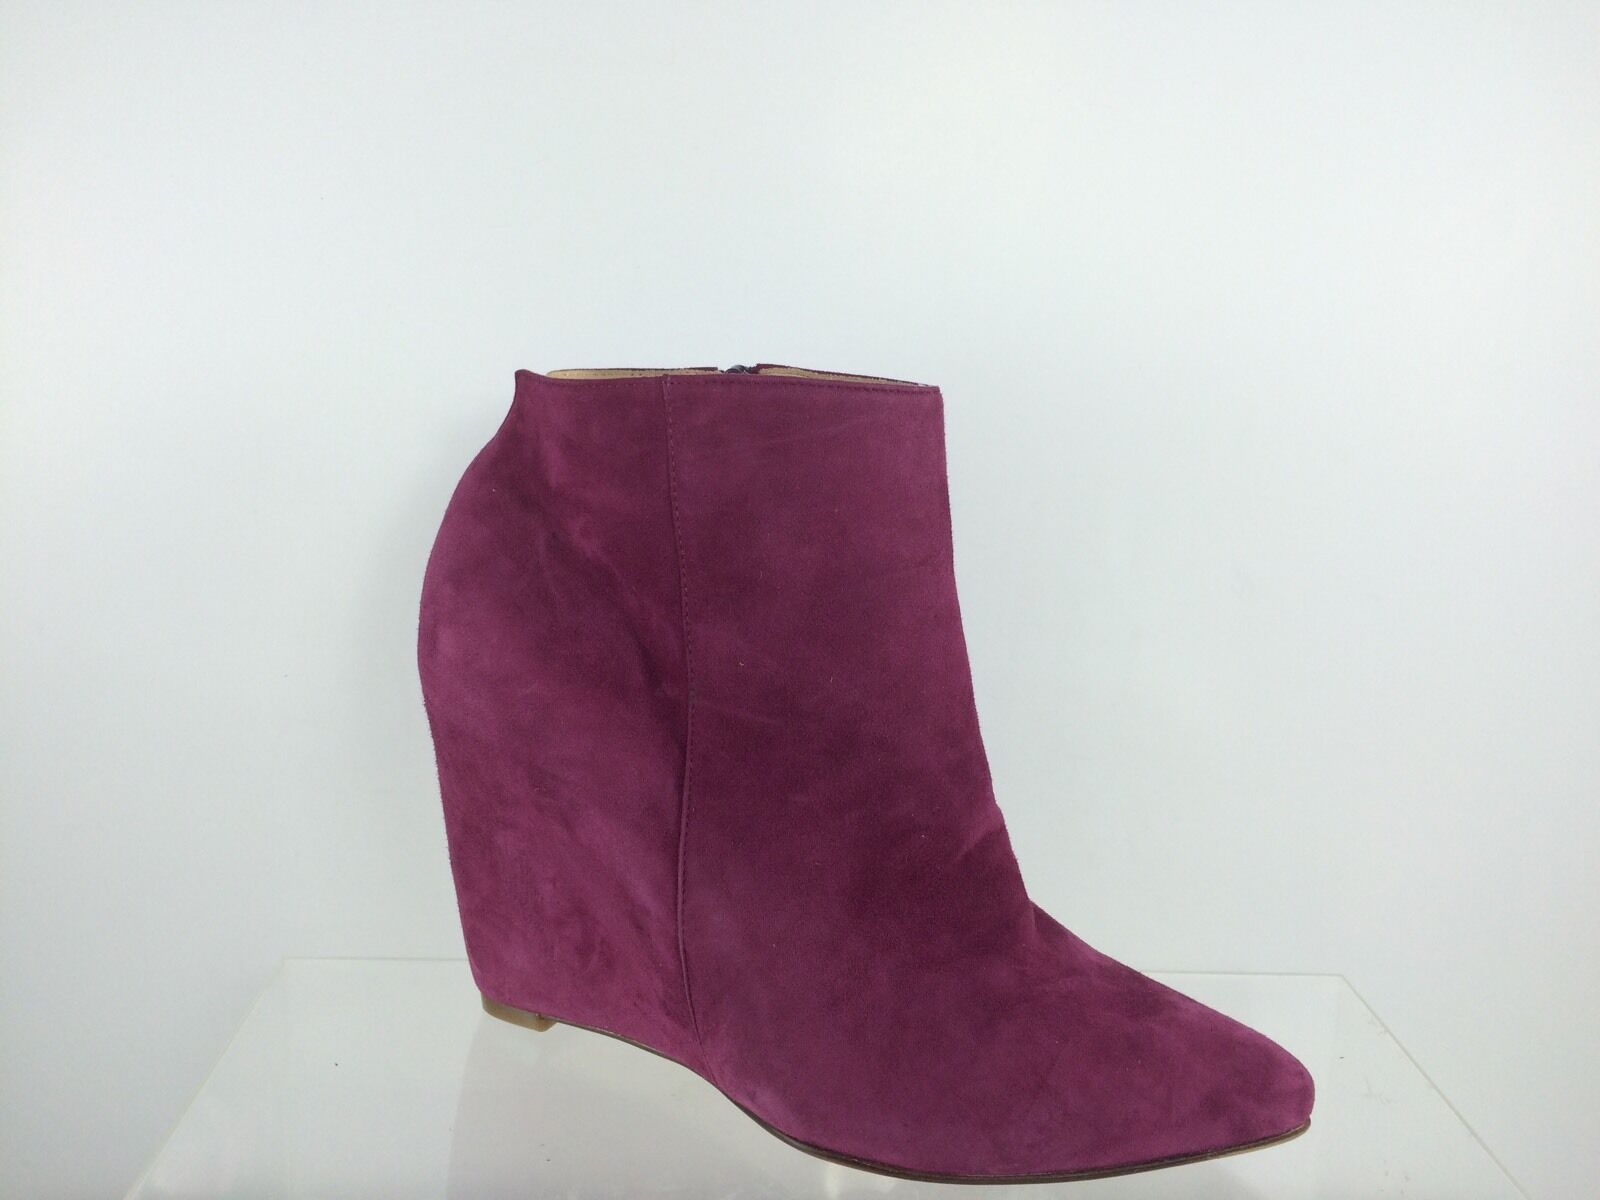 NWOB Cole Haan Women's Pink Fuchsia Suede leather Ankle Boots 7.5 B